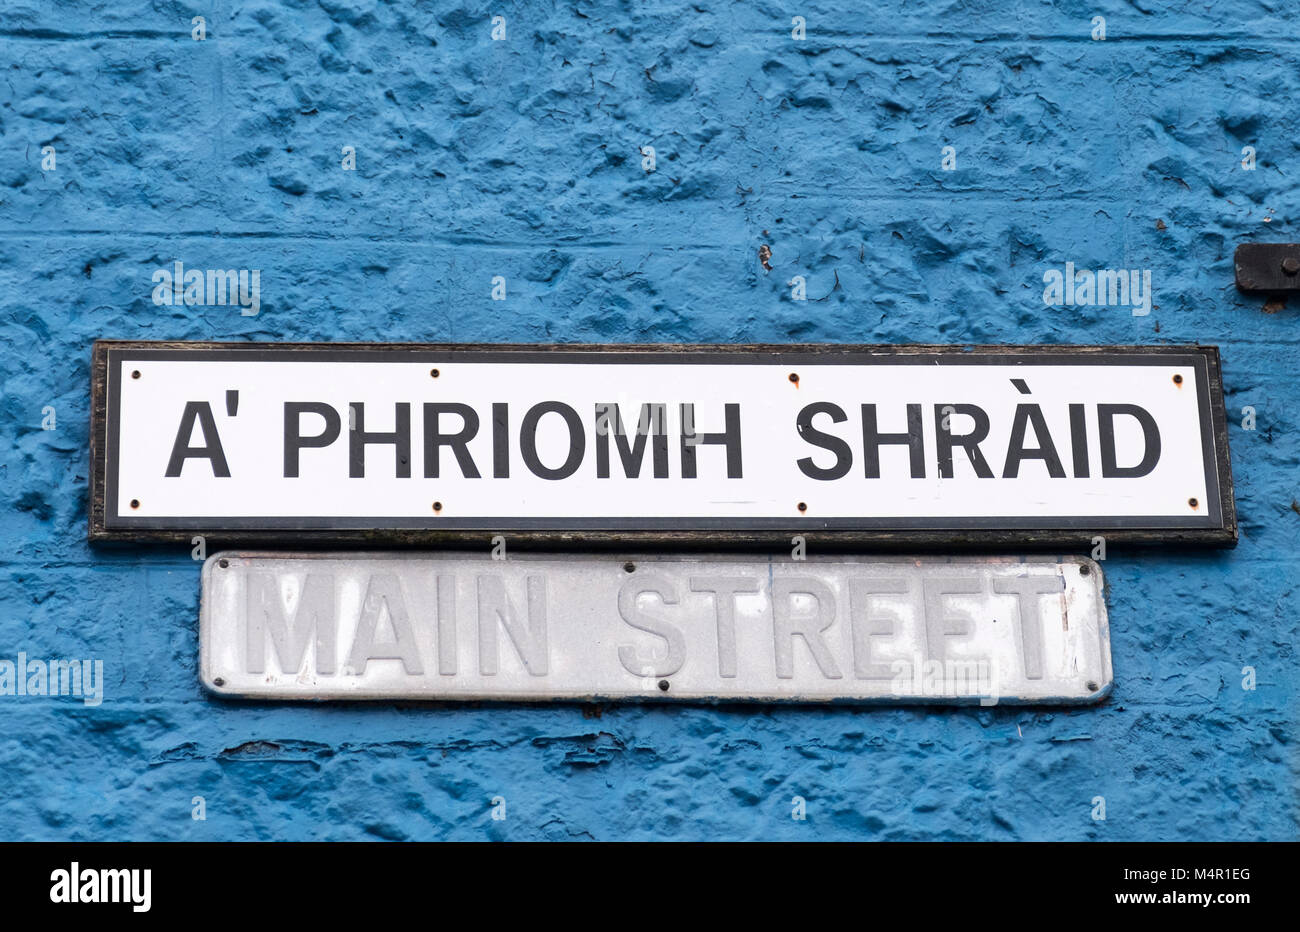 Main Street (A' Phriomh Shraid) sign in Tobermory, Isle of Mull Argyle & Bute, Inner Hebrides, Scotland. - Stock Image